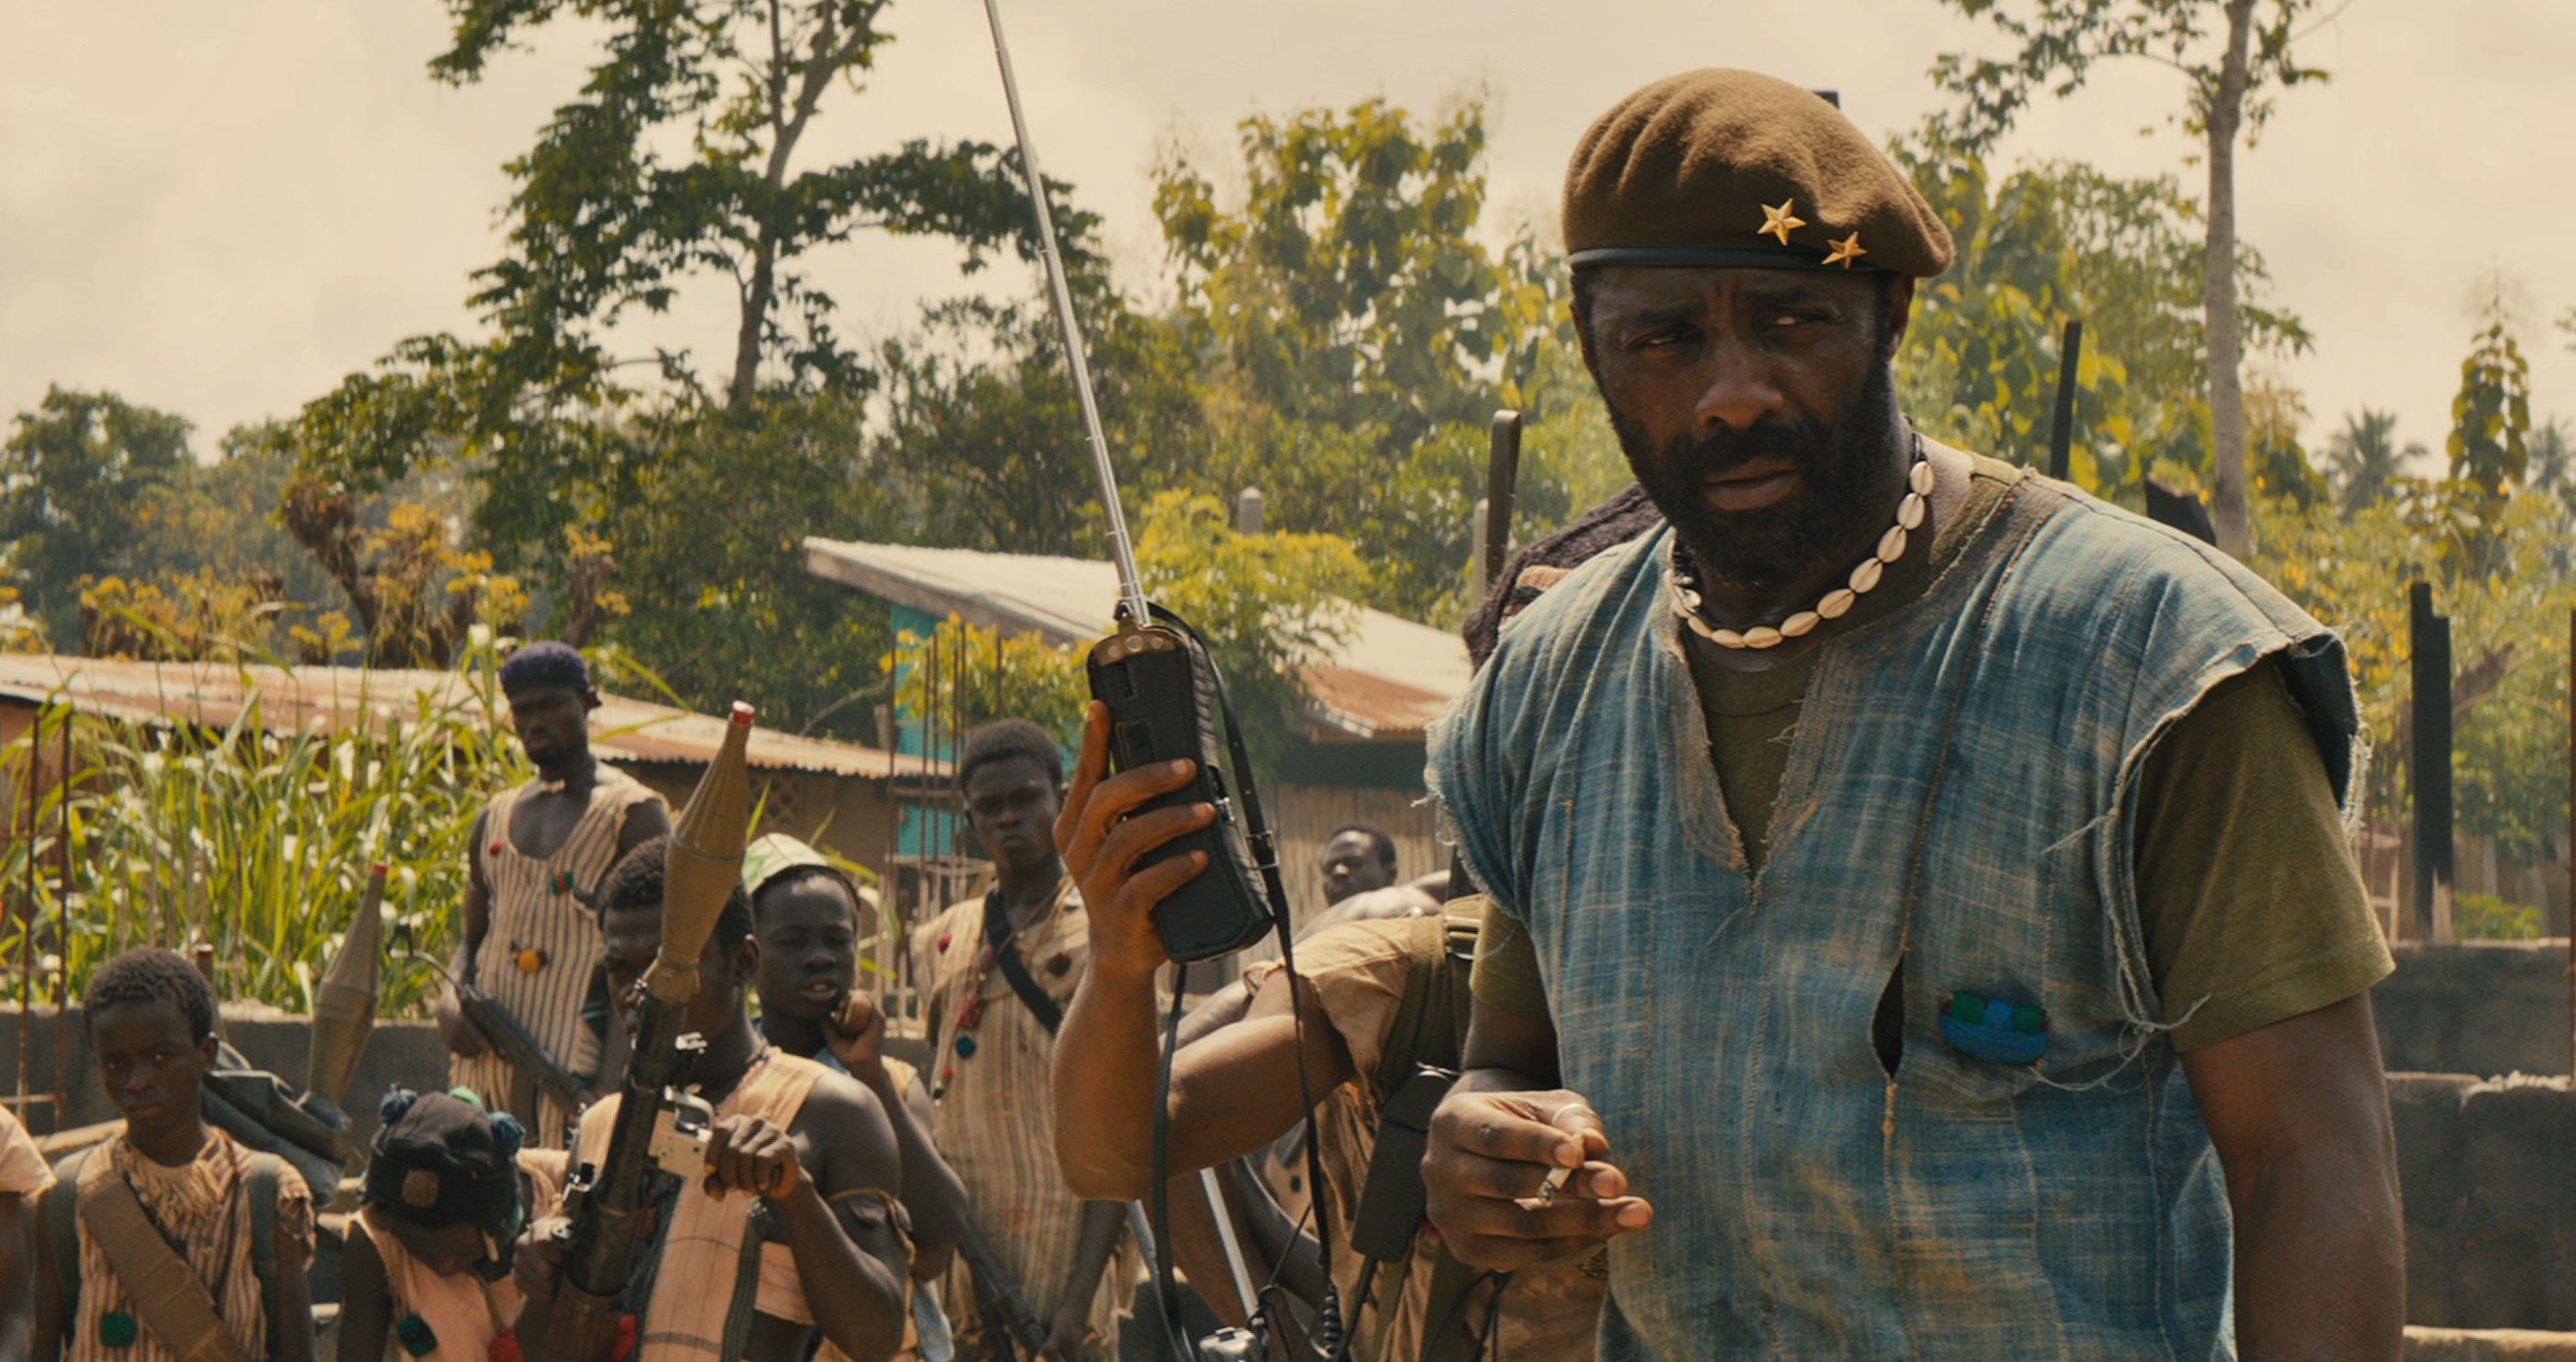 Beasts of No Nation Netflix Idris Elba